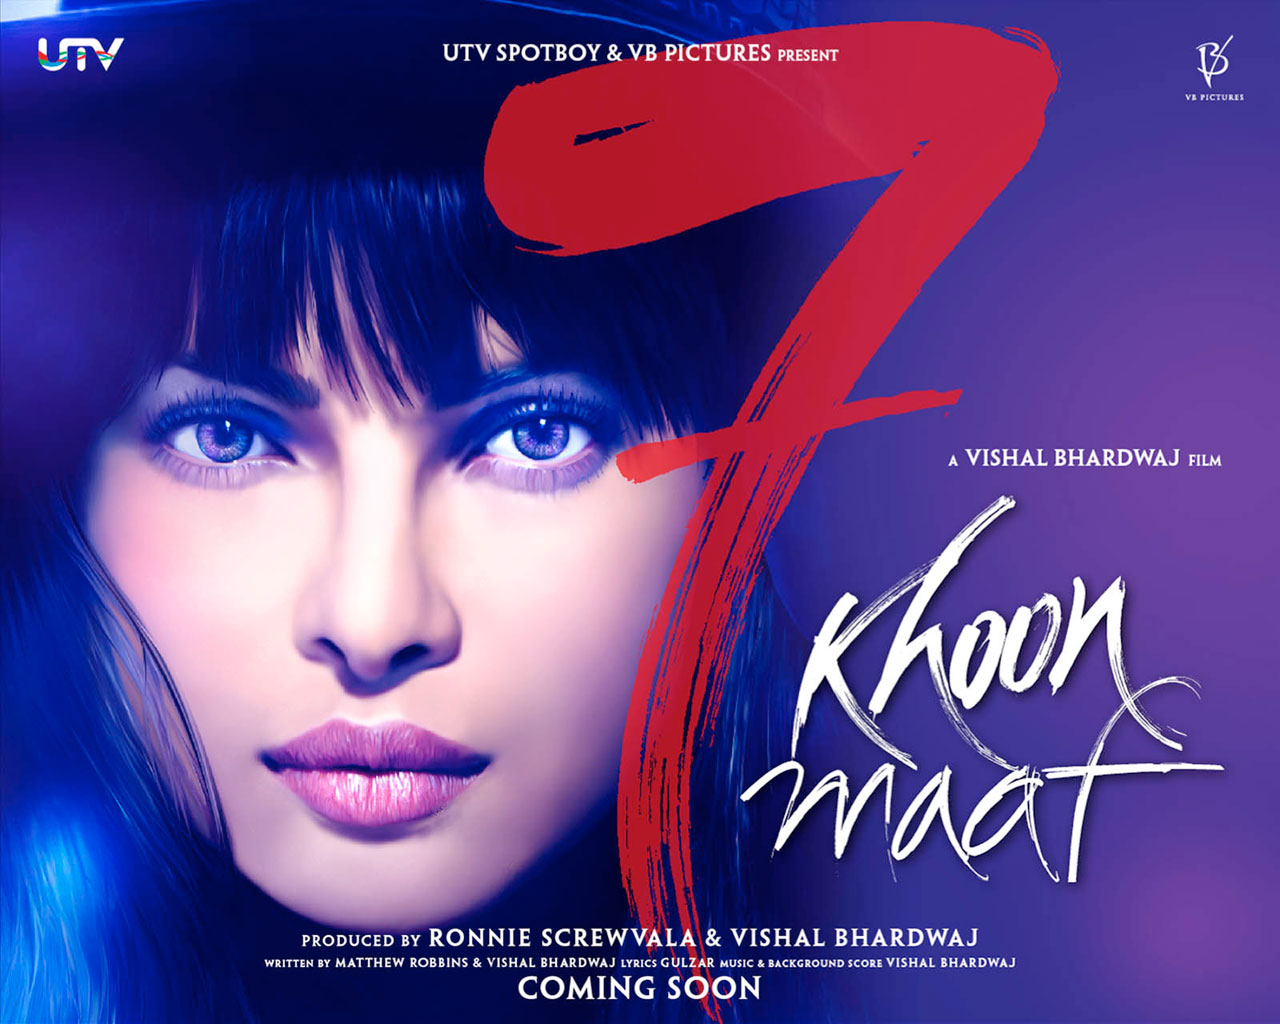 Entertainment: PRIYANKA CHOPRA-7 KHOON MAAF